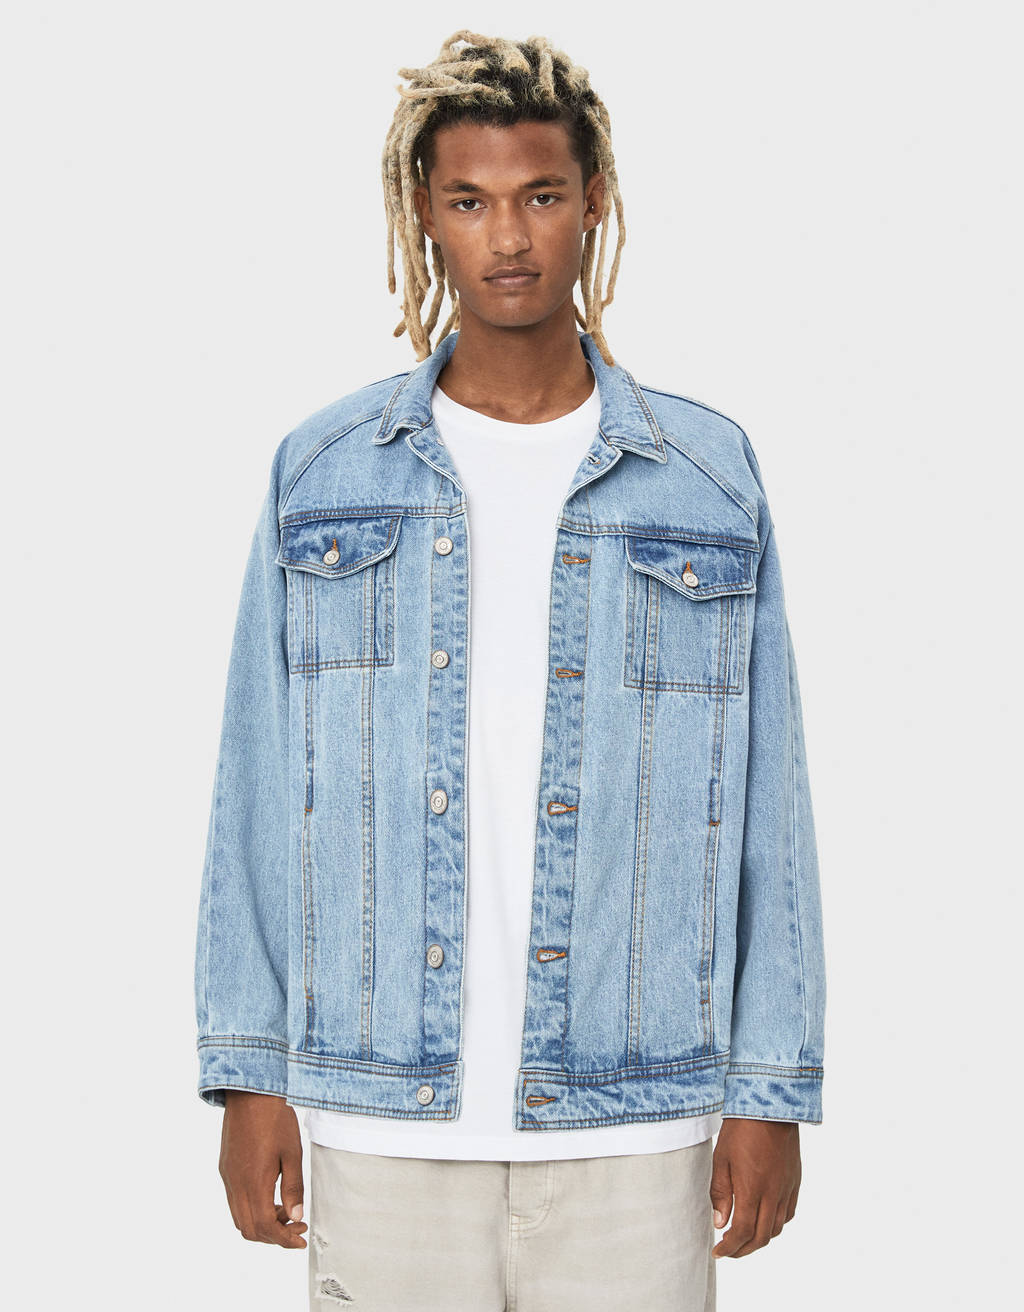 Denim Sesame Street jacket